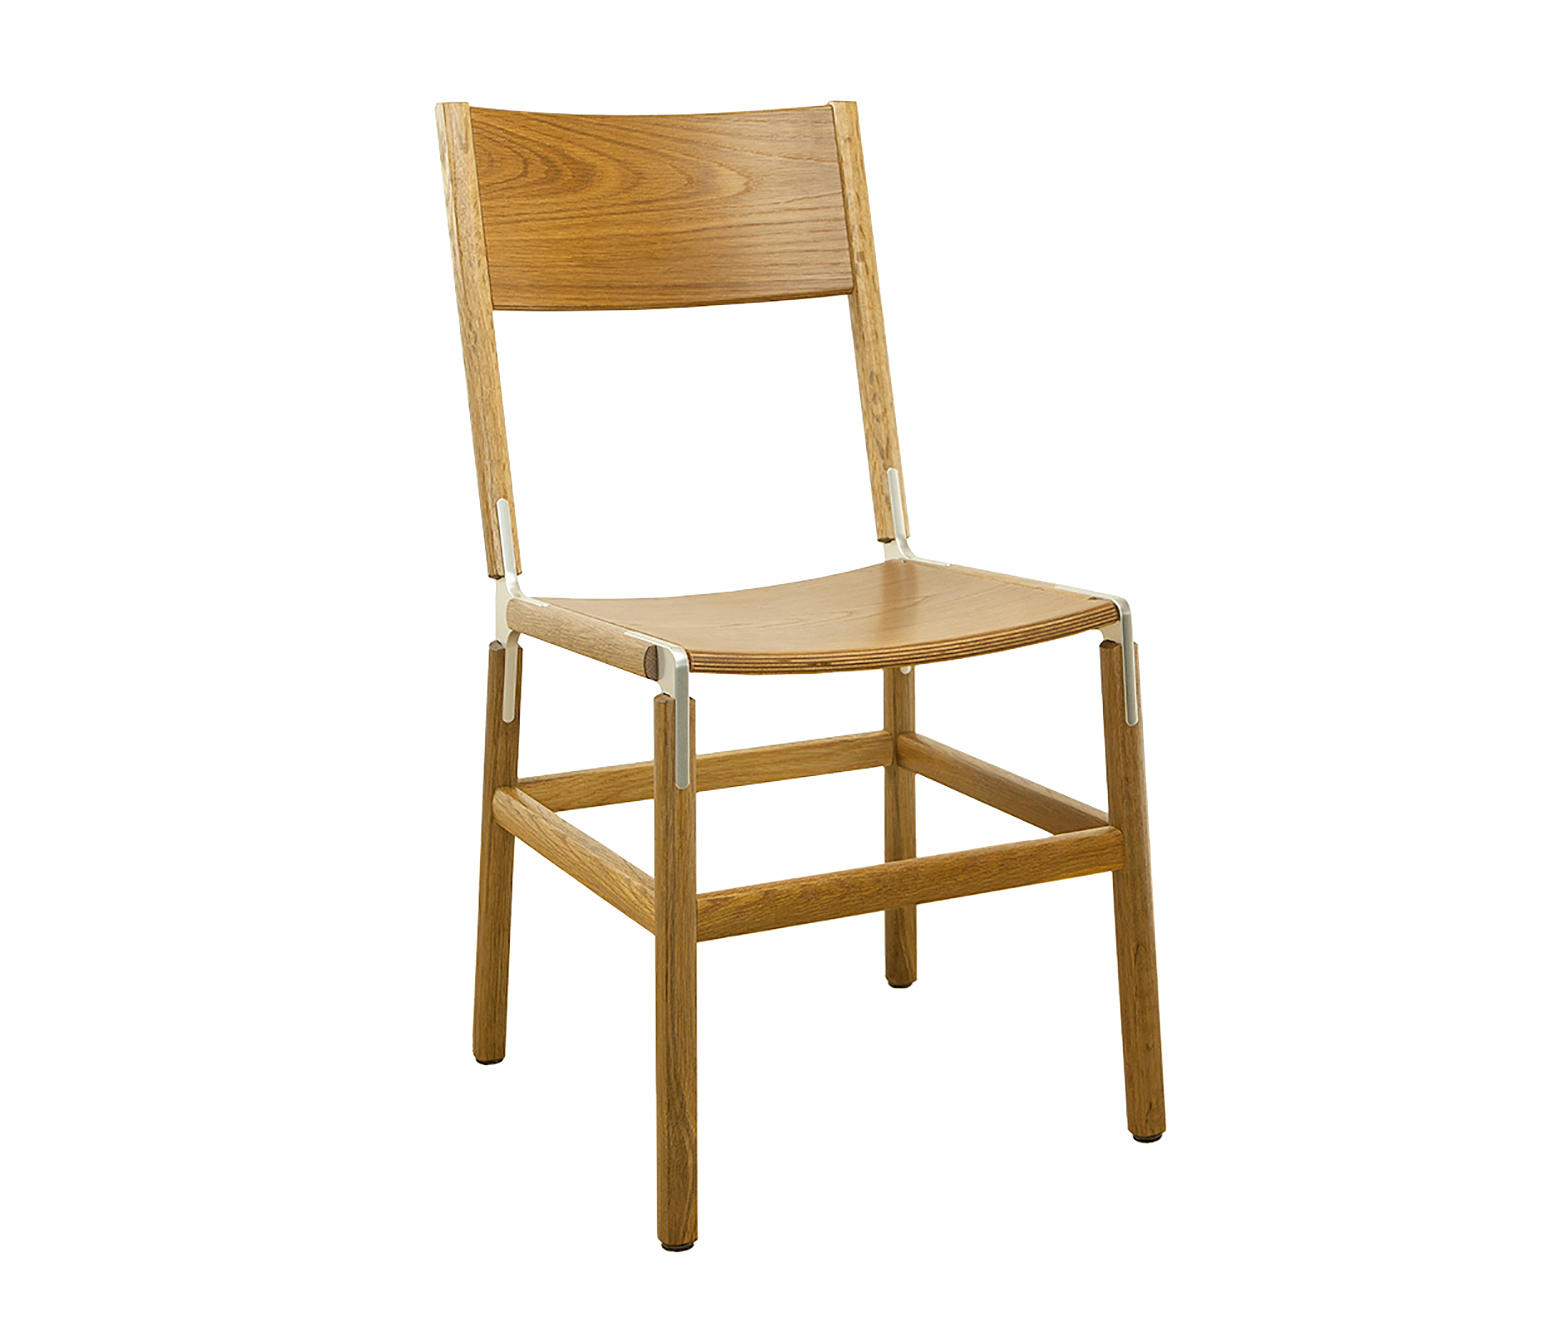 Mariposa Standard Chair By Fyrn | Chairs ...